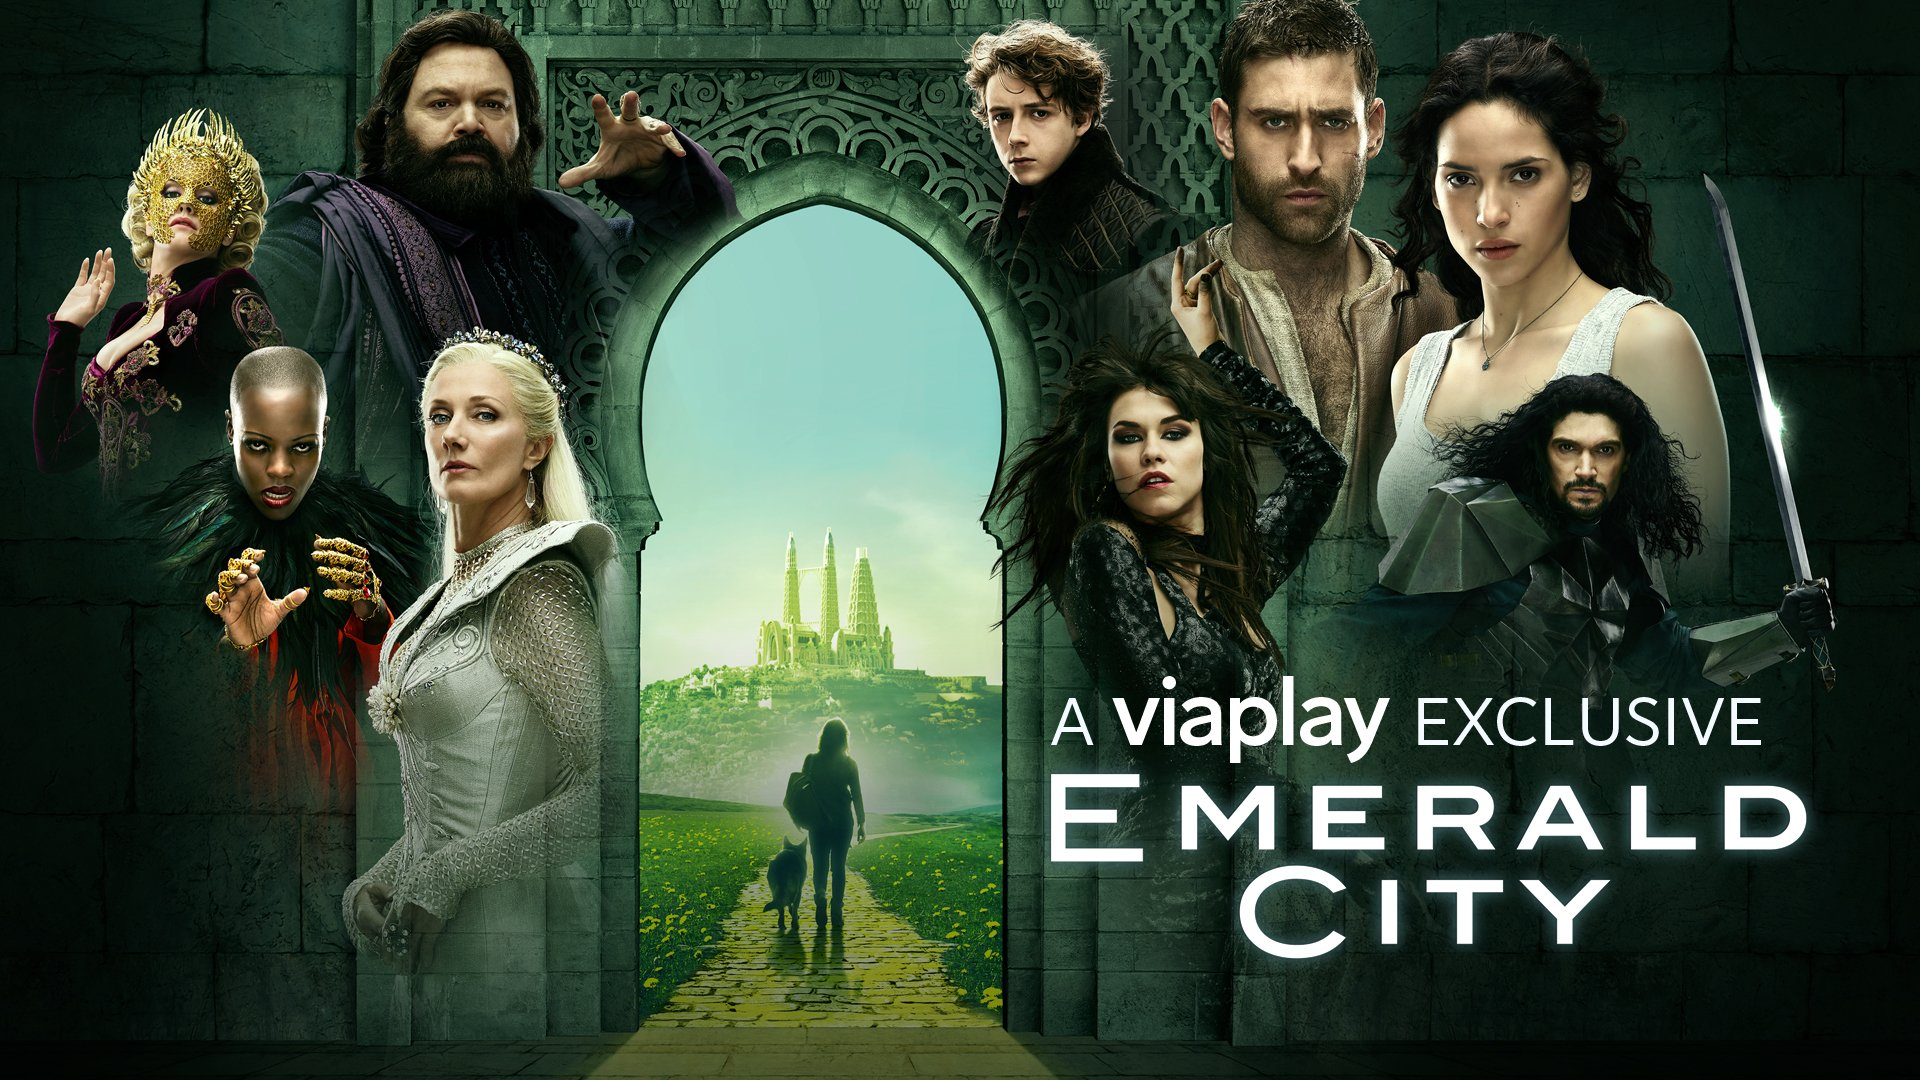 emerald city Viaplay